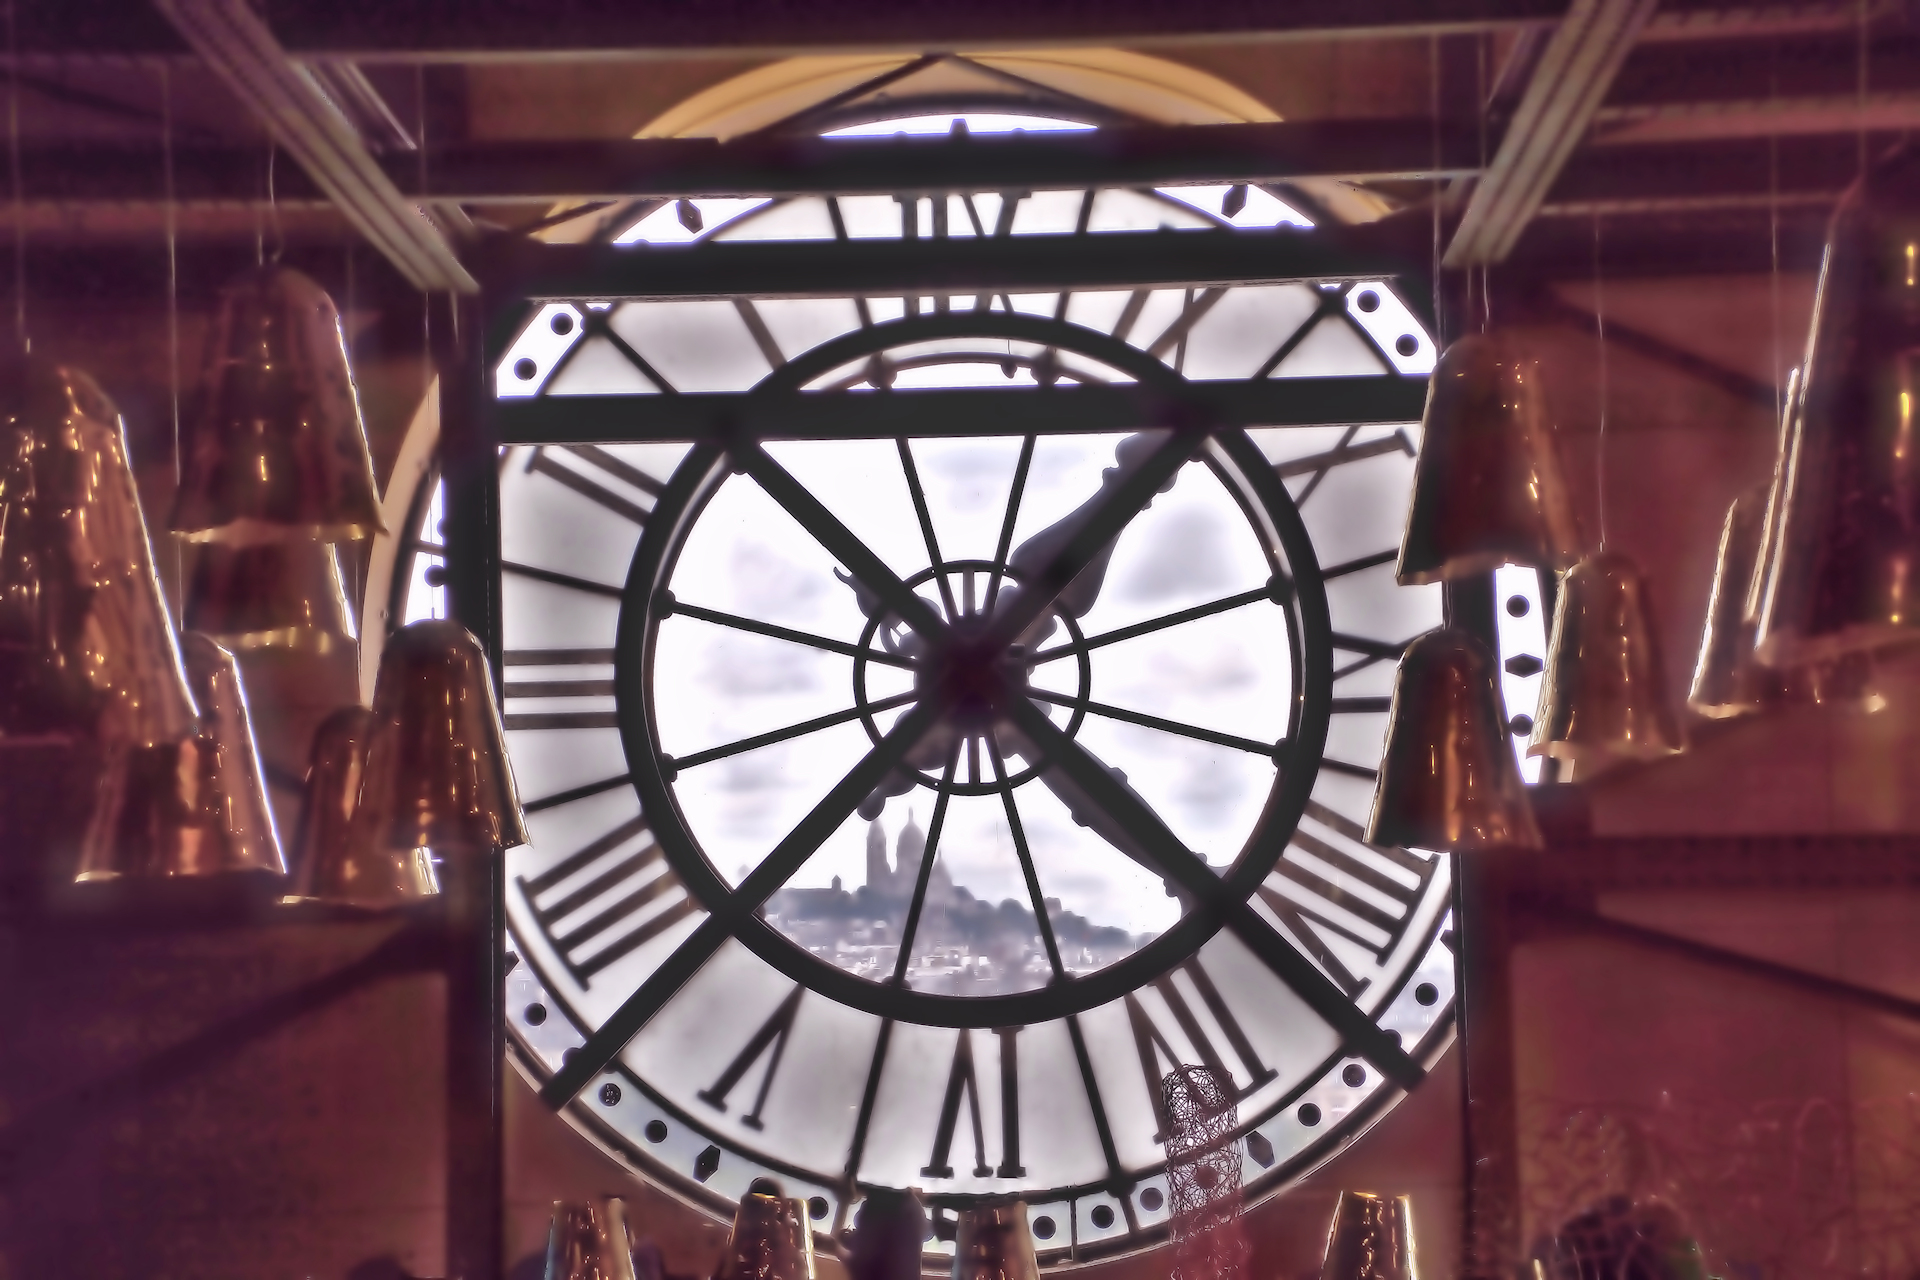 From Museum d'Orsay - Week of Nov. 27th to Dec. 1st